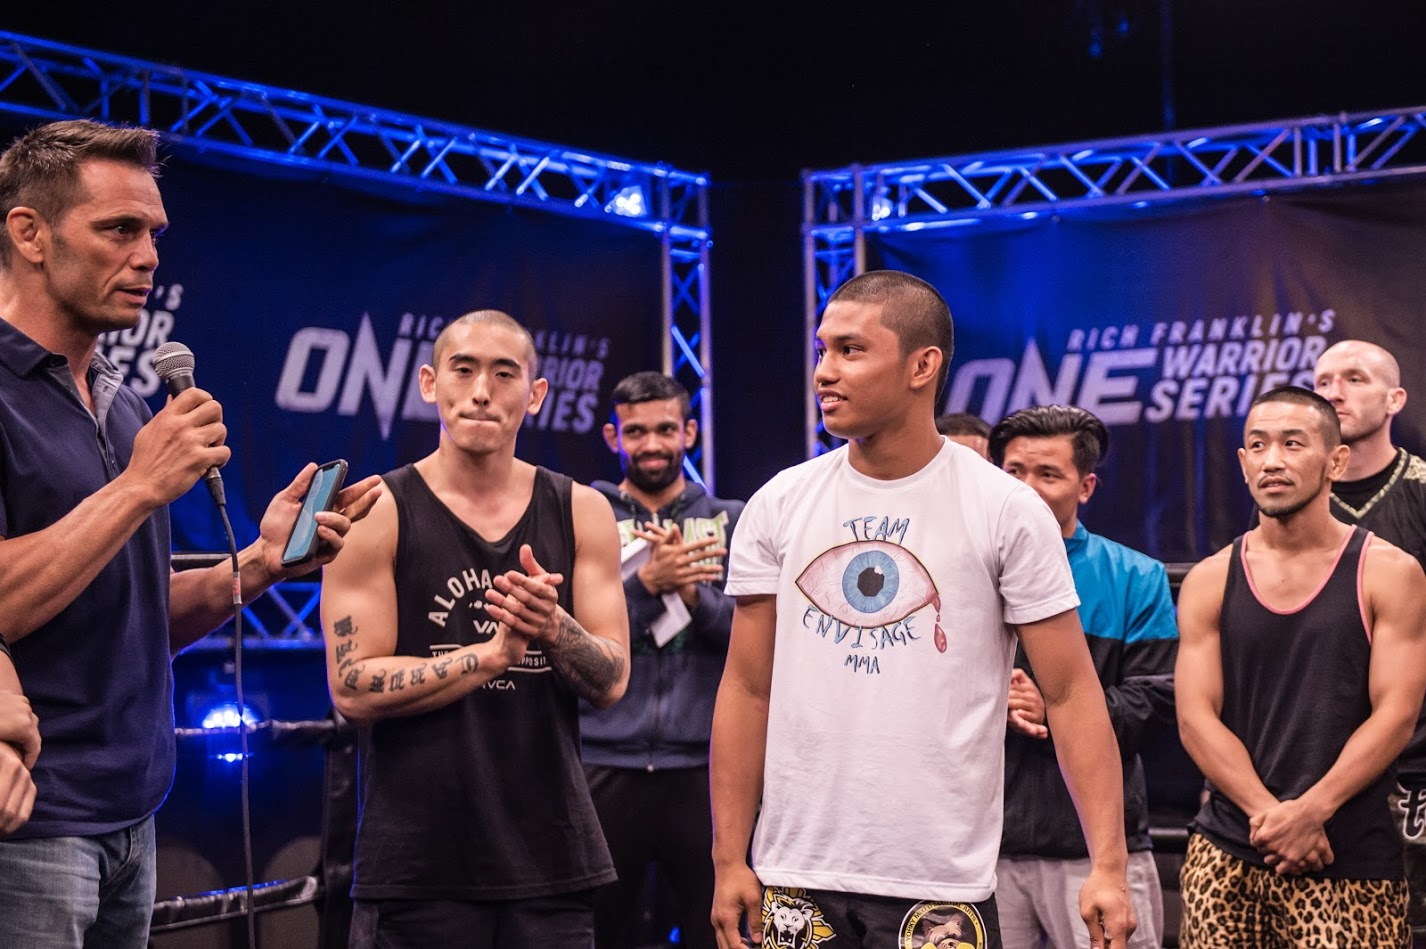 RICH FRANKLIN'S ONE WARRIOR SERIES FINALE AWARDS THREE PROSPECTS WITH USD $100K+ ONE CHAMPIONSHIP CONTRACTS -